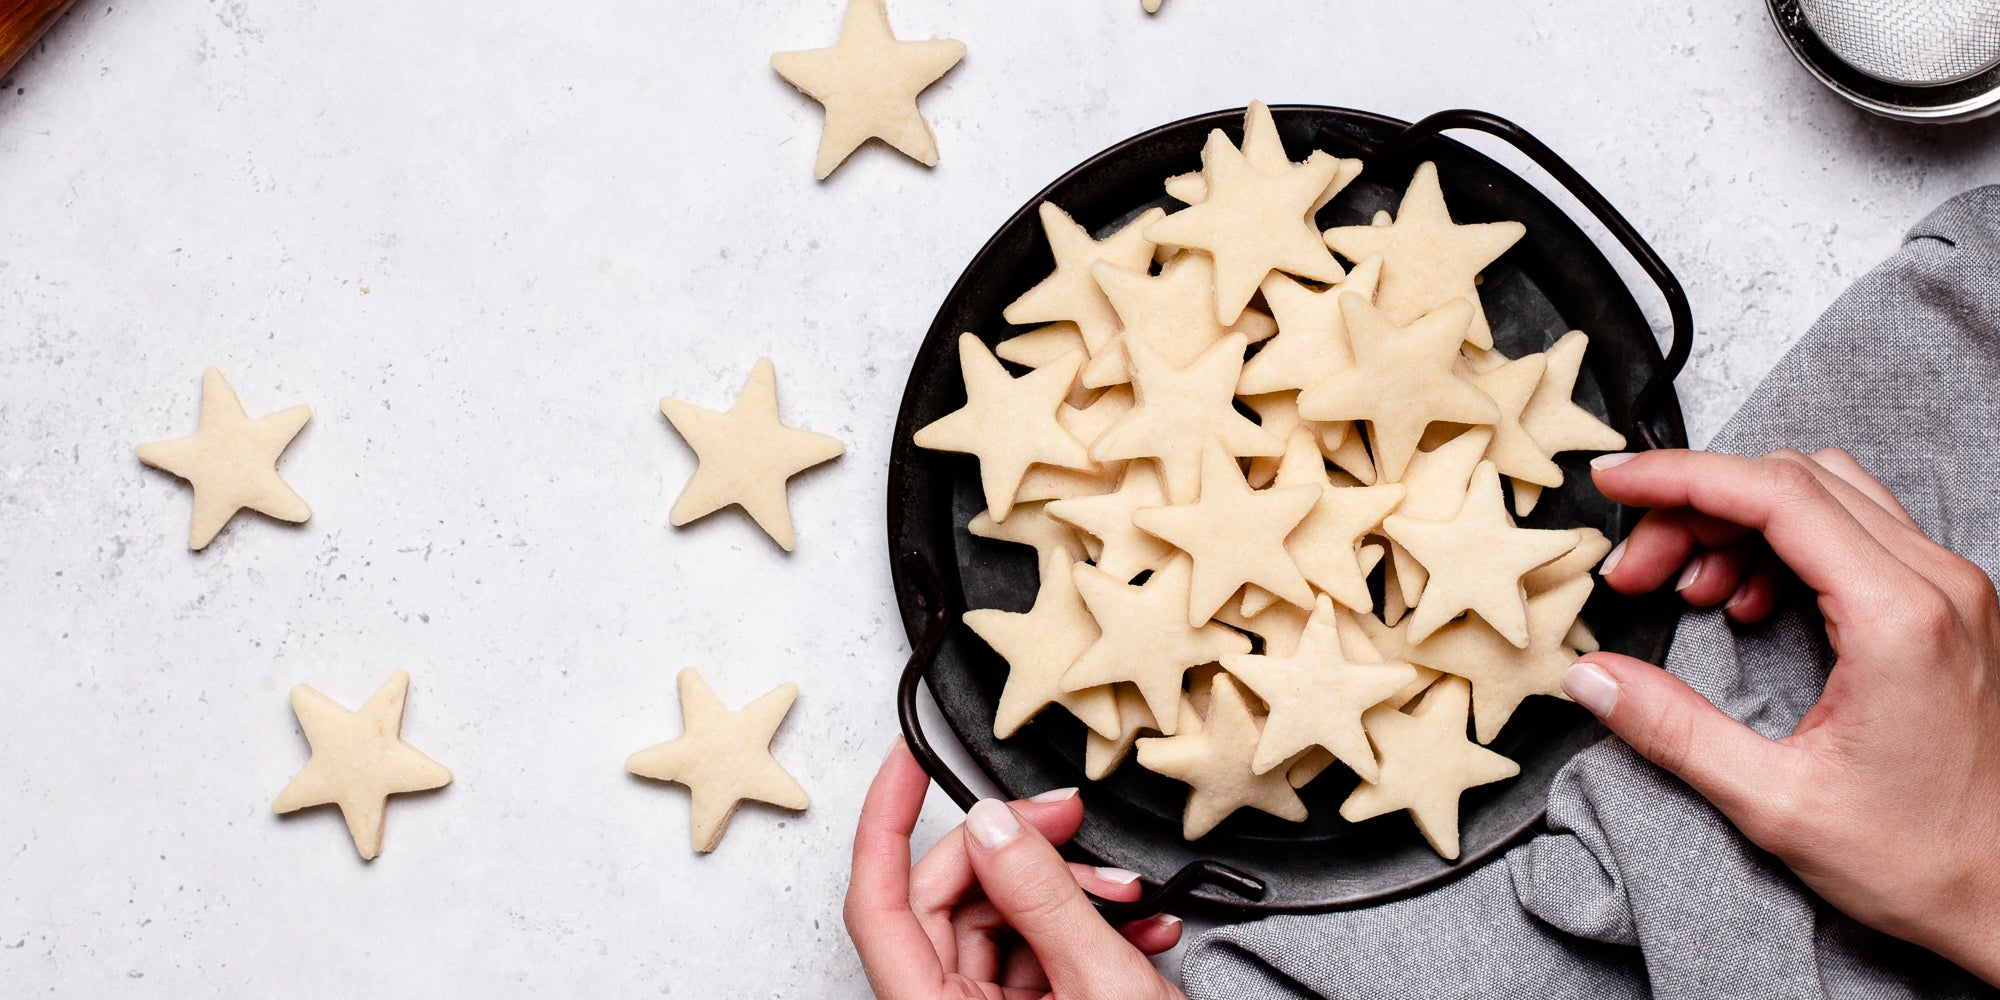 A top down view of a hand taking from some star shaped vegan biscuits in a bowl